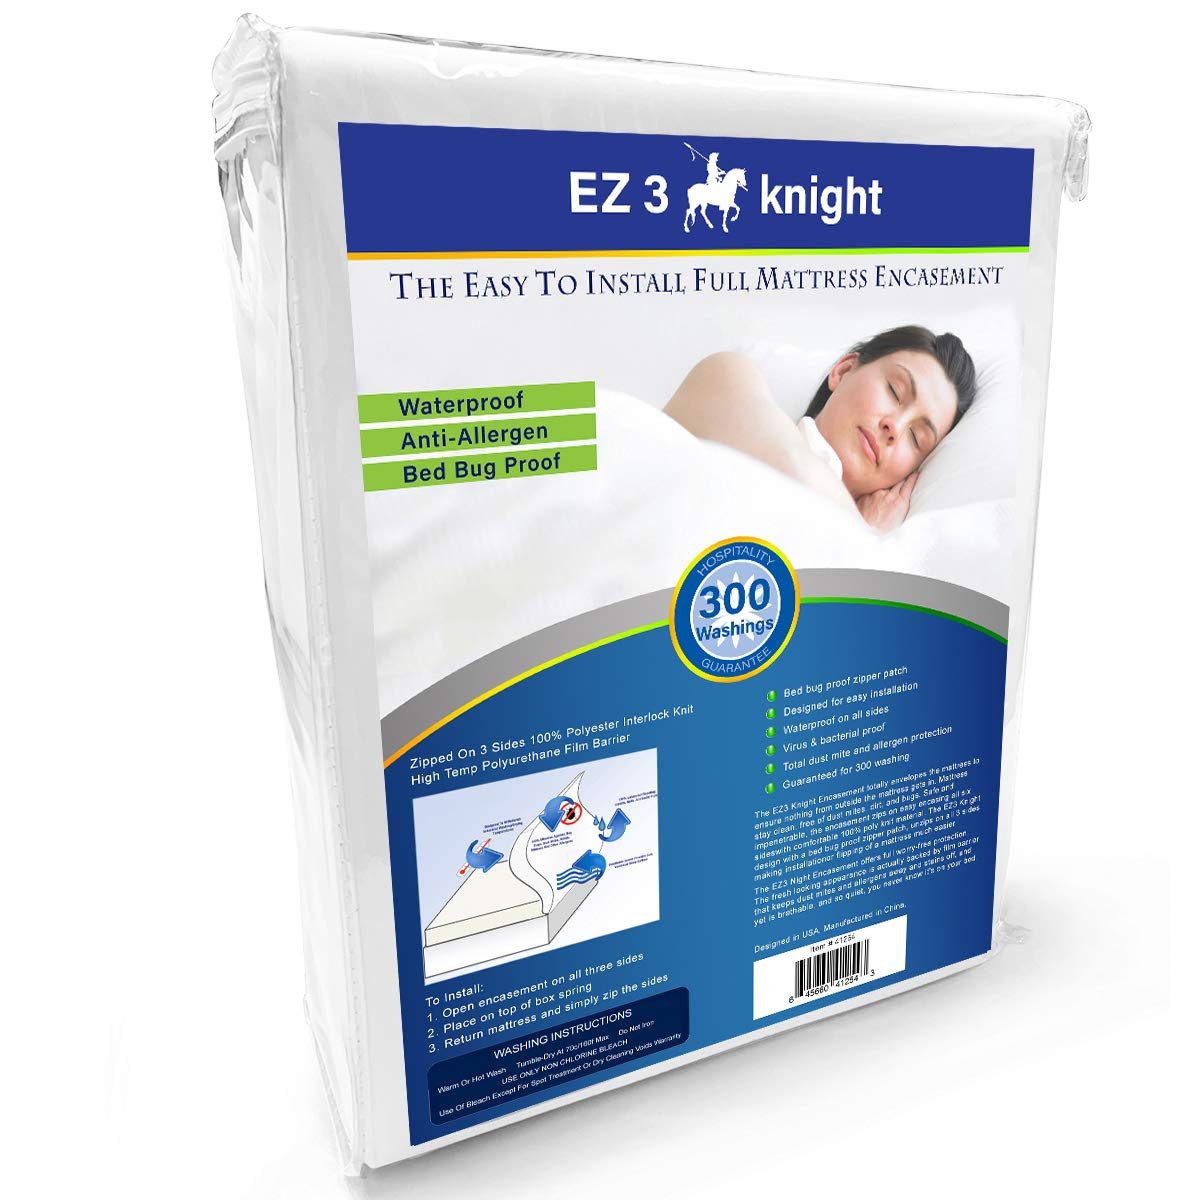 EZ3 Knight Mattress Encasement - Quality Mattress Protector Designed with 100% Waterproof, Virus & Bacteria Proof, Hypoallergenic Poly-Knit Material (Full Bed) by Easy King